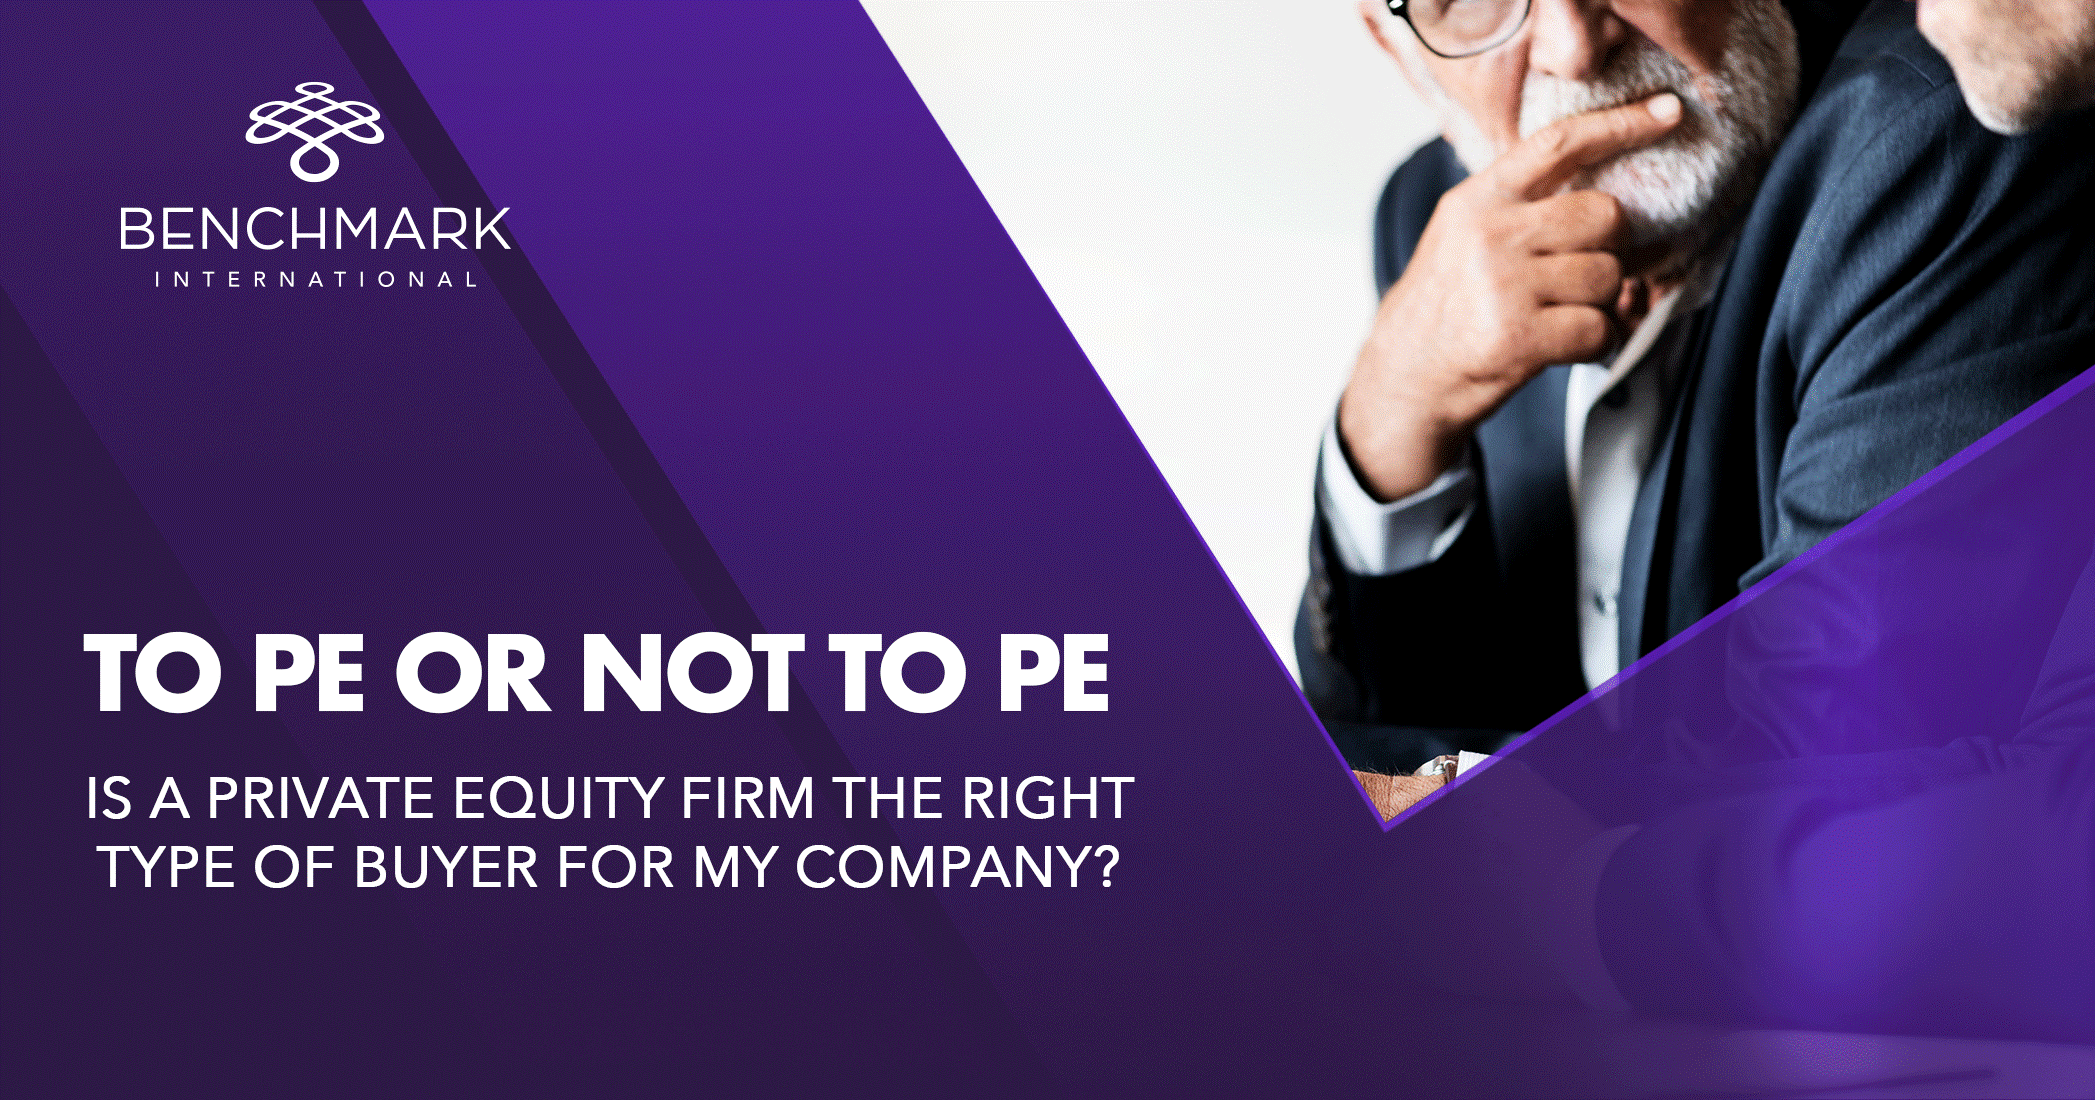 To PE or Not to PE – Is a Private Equity Firm the Right Type of Buyer for My Company?